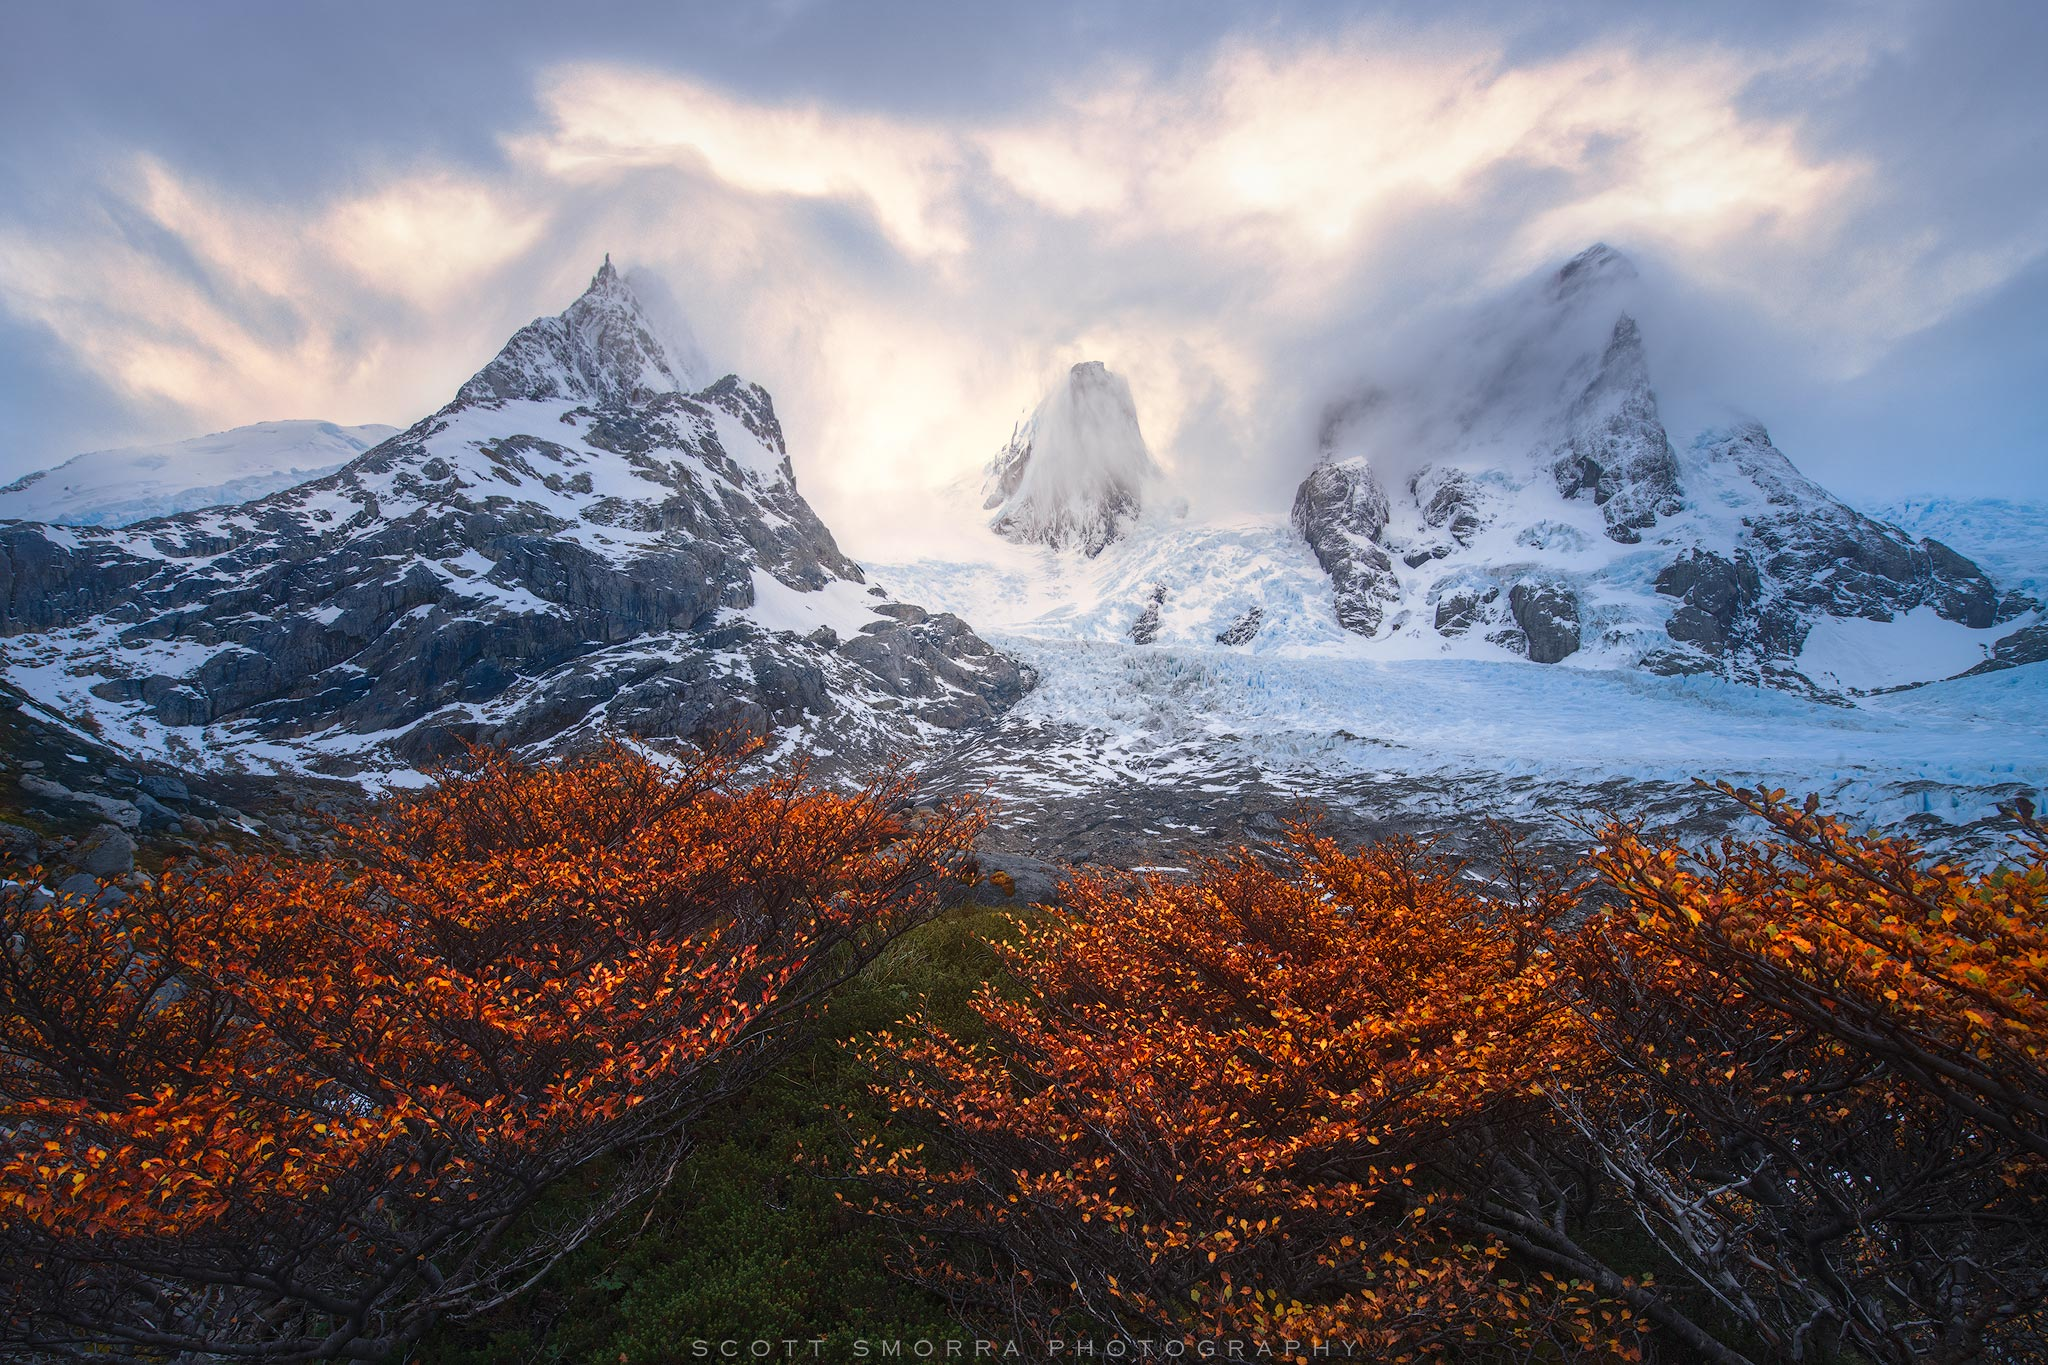 Patagonia, Chile, Fjords, lenga, tree, peaks, glaciated, alpine, glacier,, photo